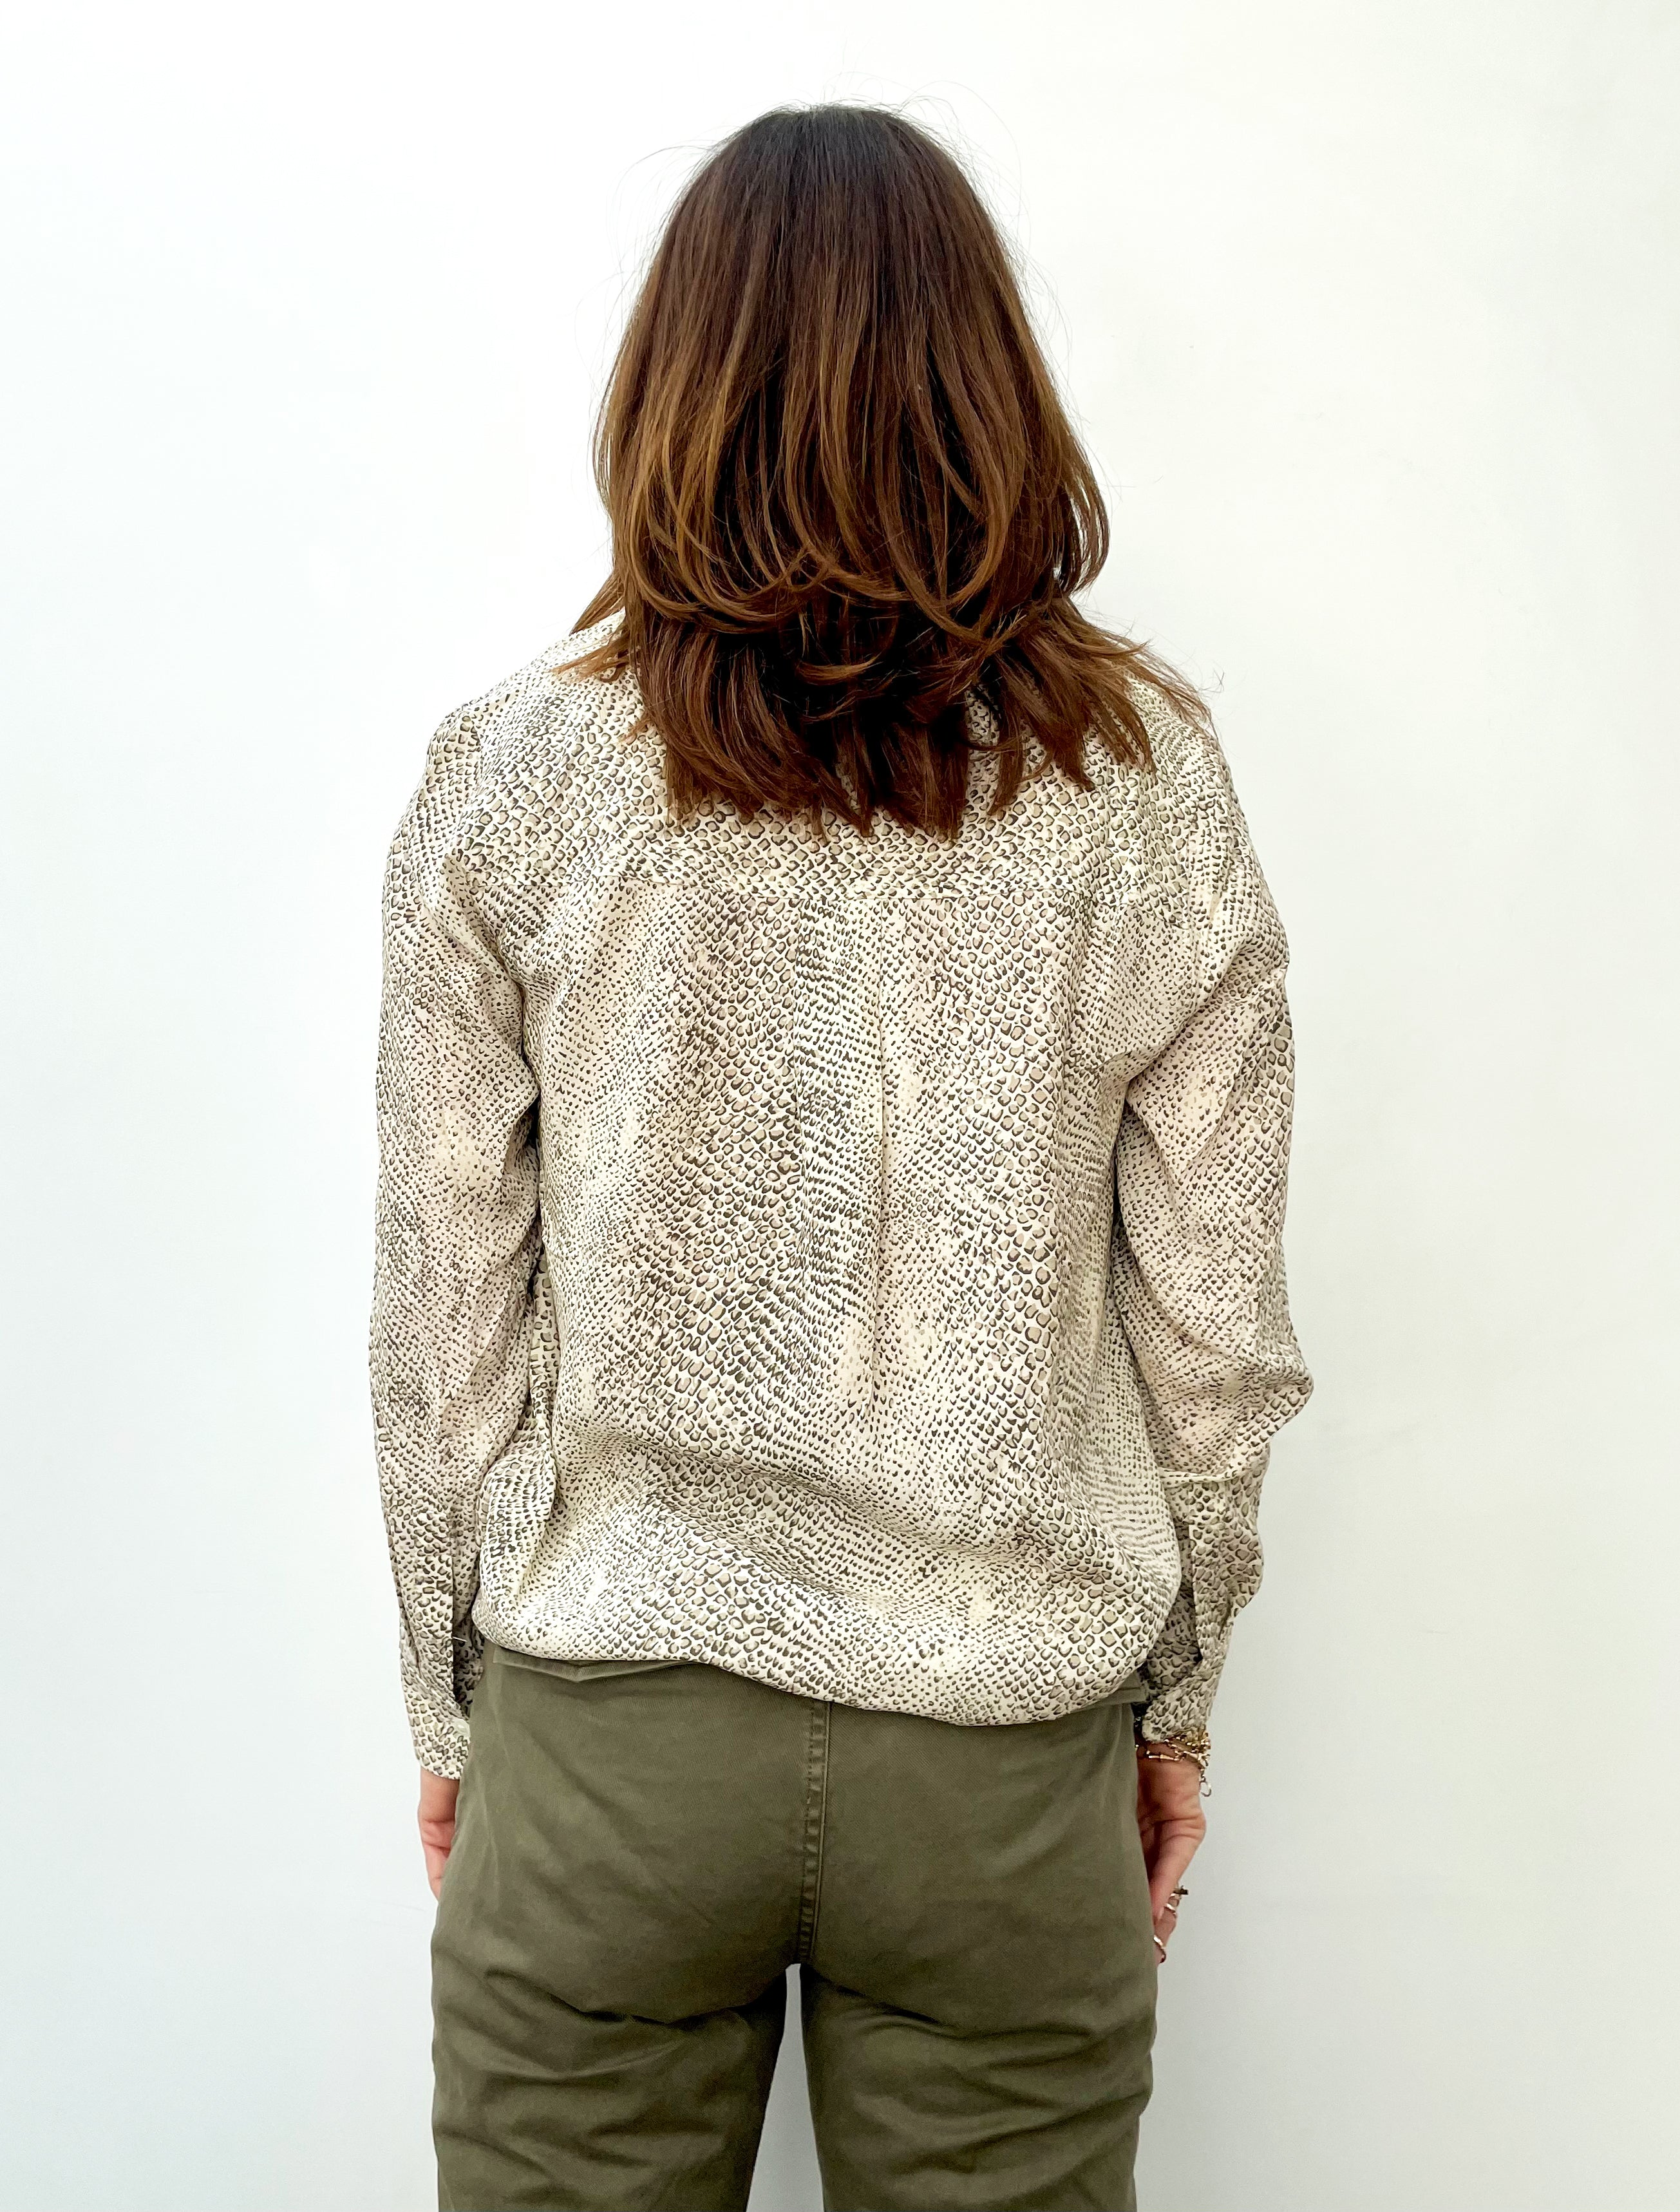 RAILS Hillary Top in Cream Snakeskin